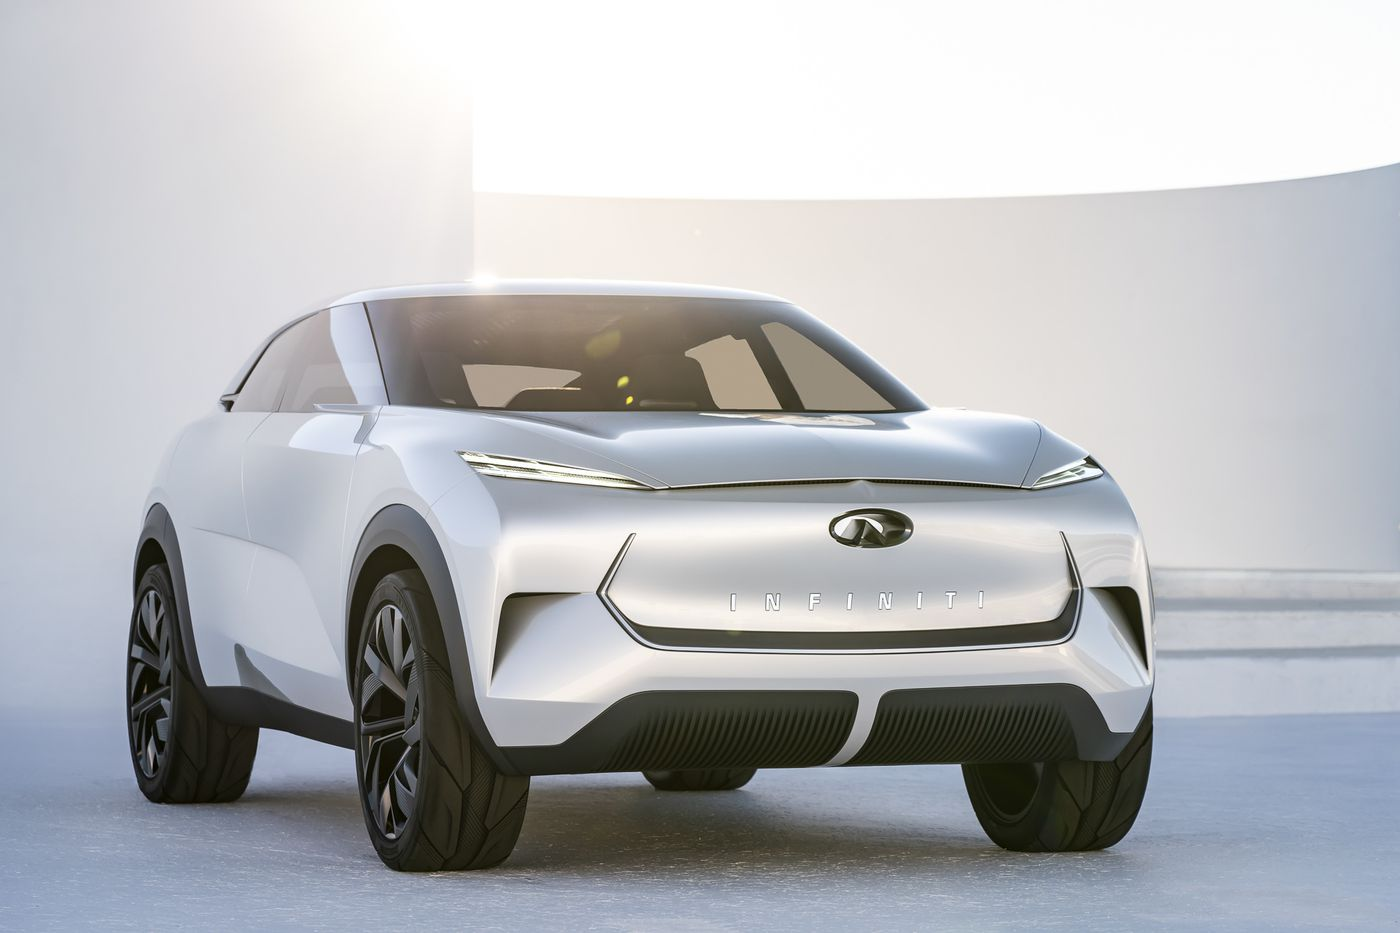 Infiniti S First All Electric Car Will Be Inspired By This Flashy Concept The Verge